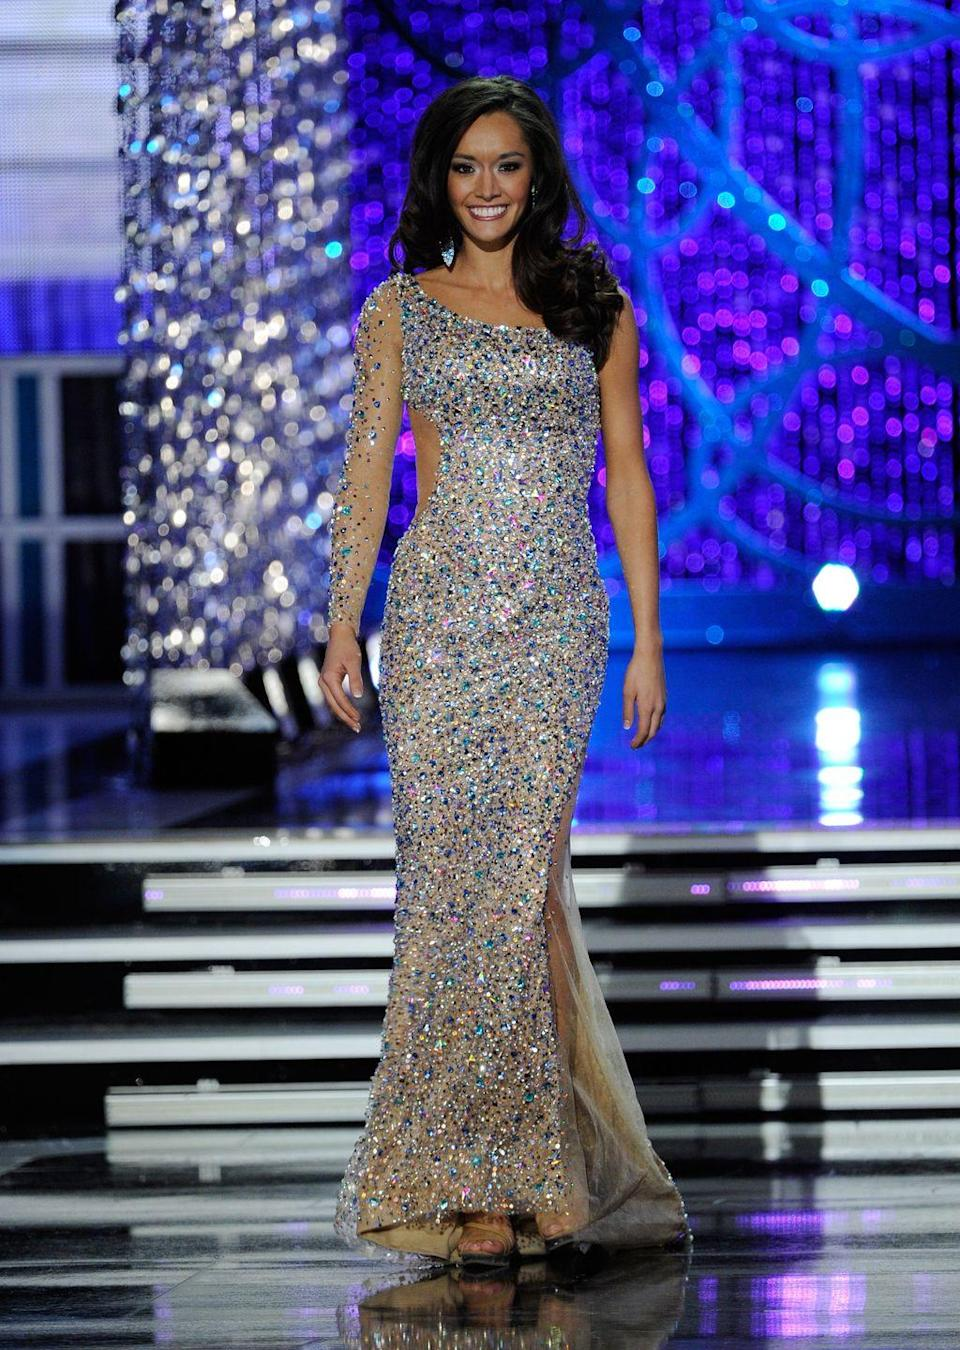 <p>One-shoulder dresses were huge back in 2013, and DaNae Couch of Texas makes this one look fabulous. </p>